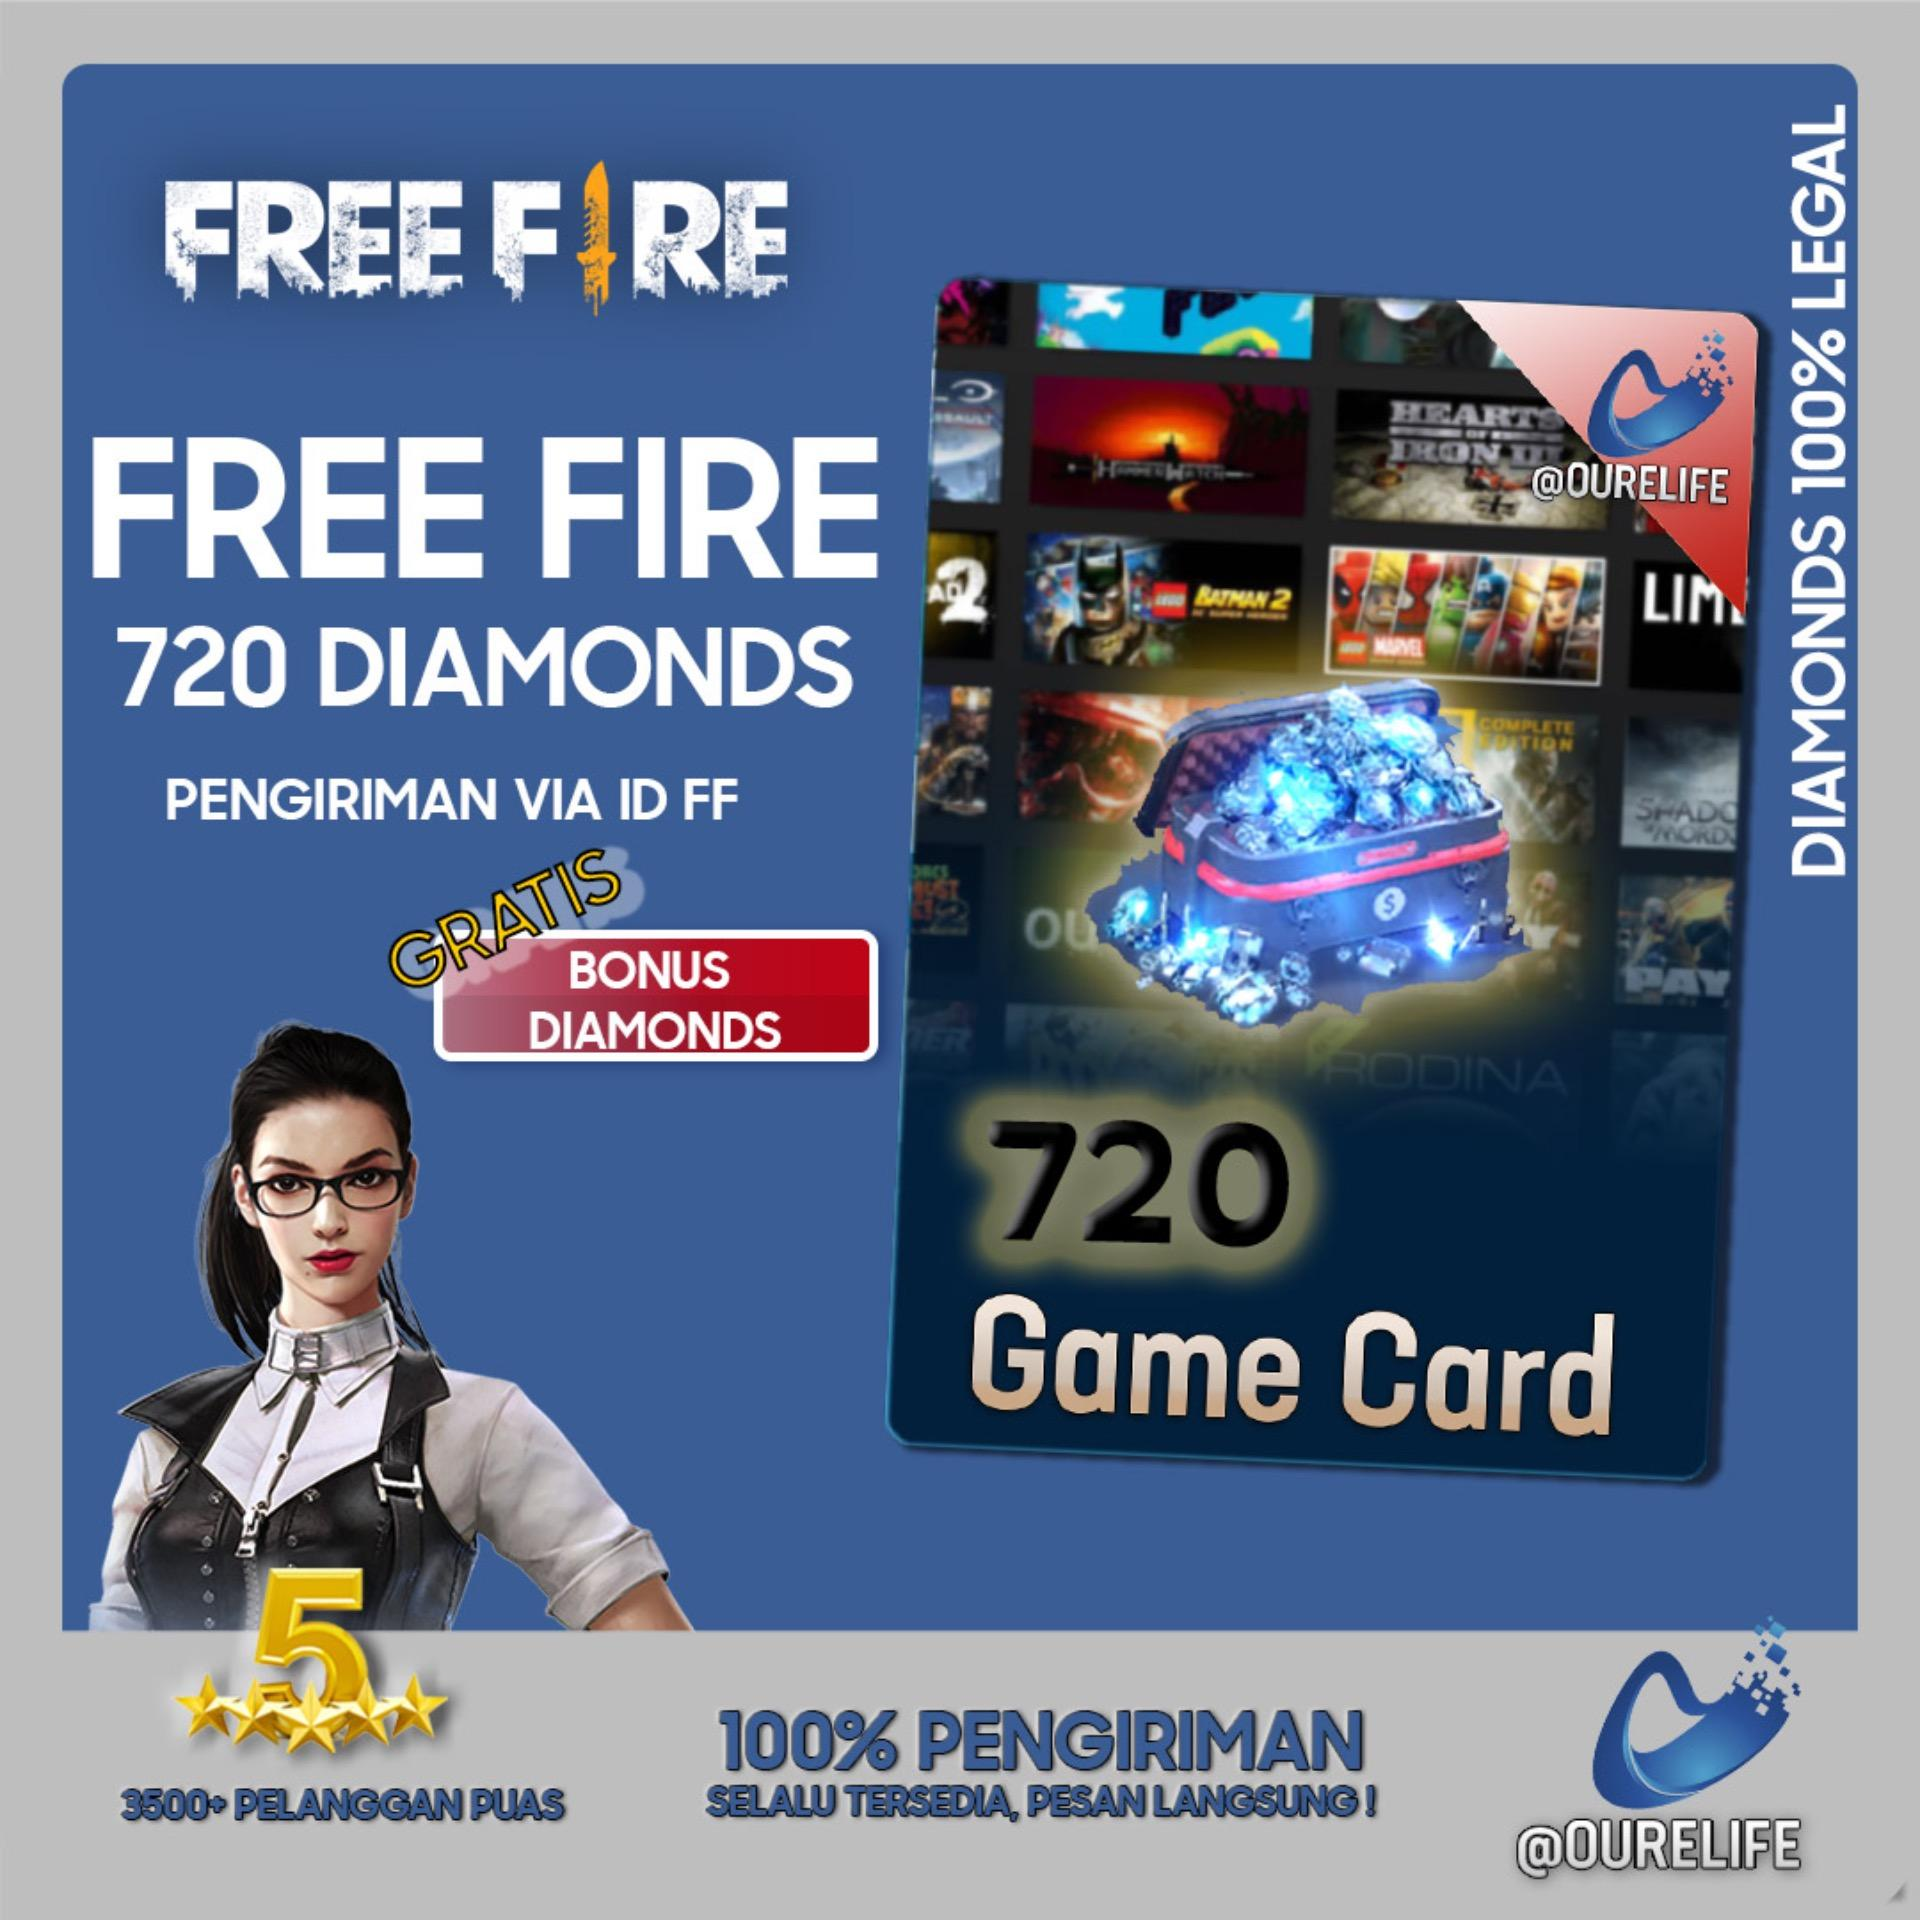 Top Up 720 Diamond Free Fire By Ourelife.co.id.